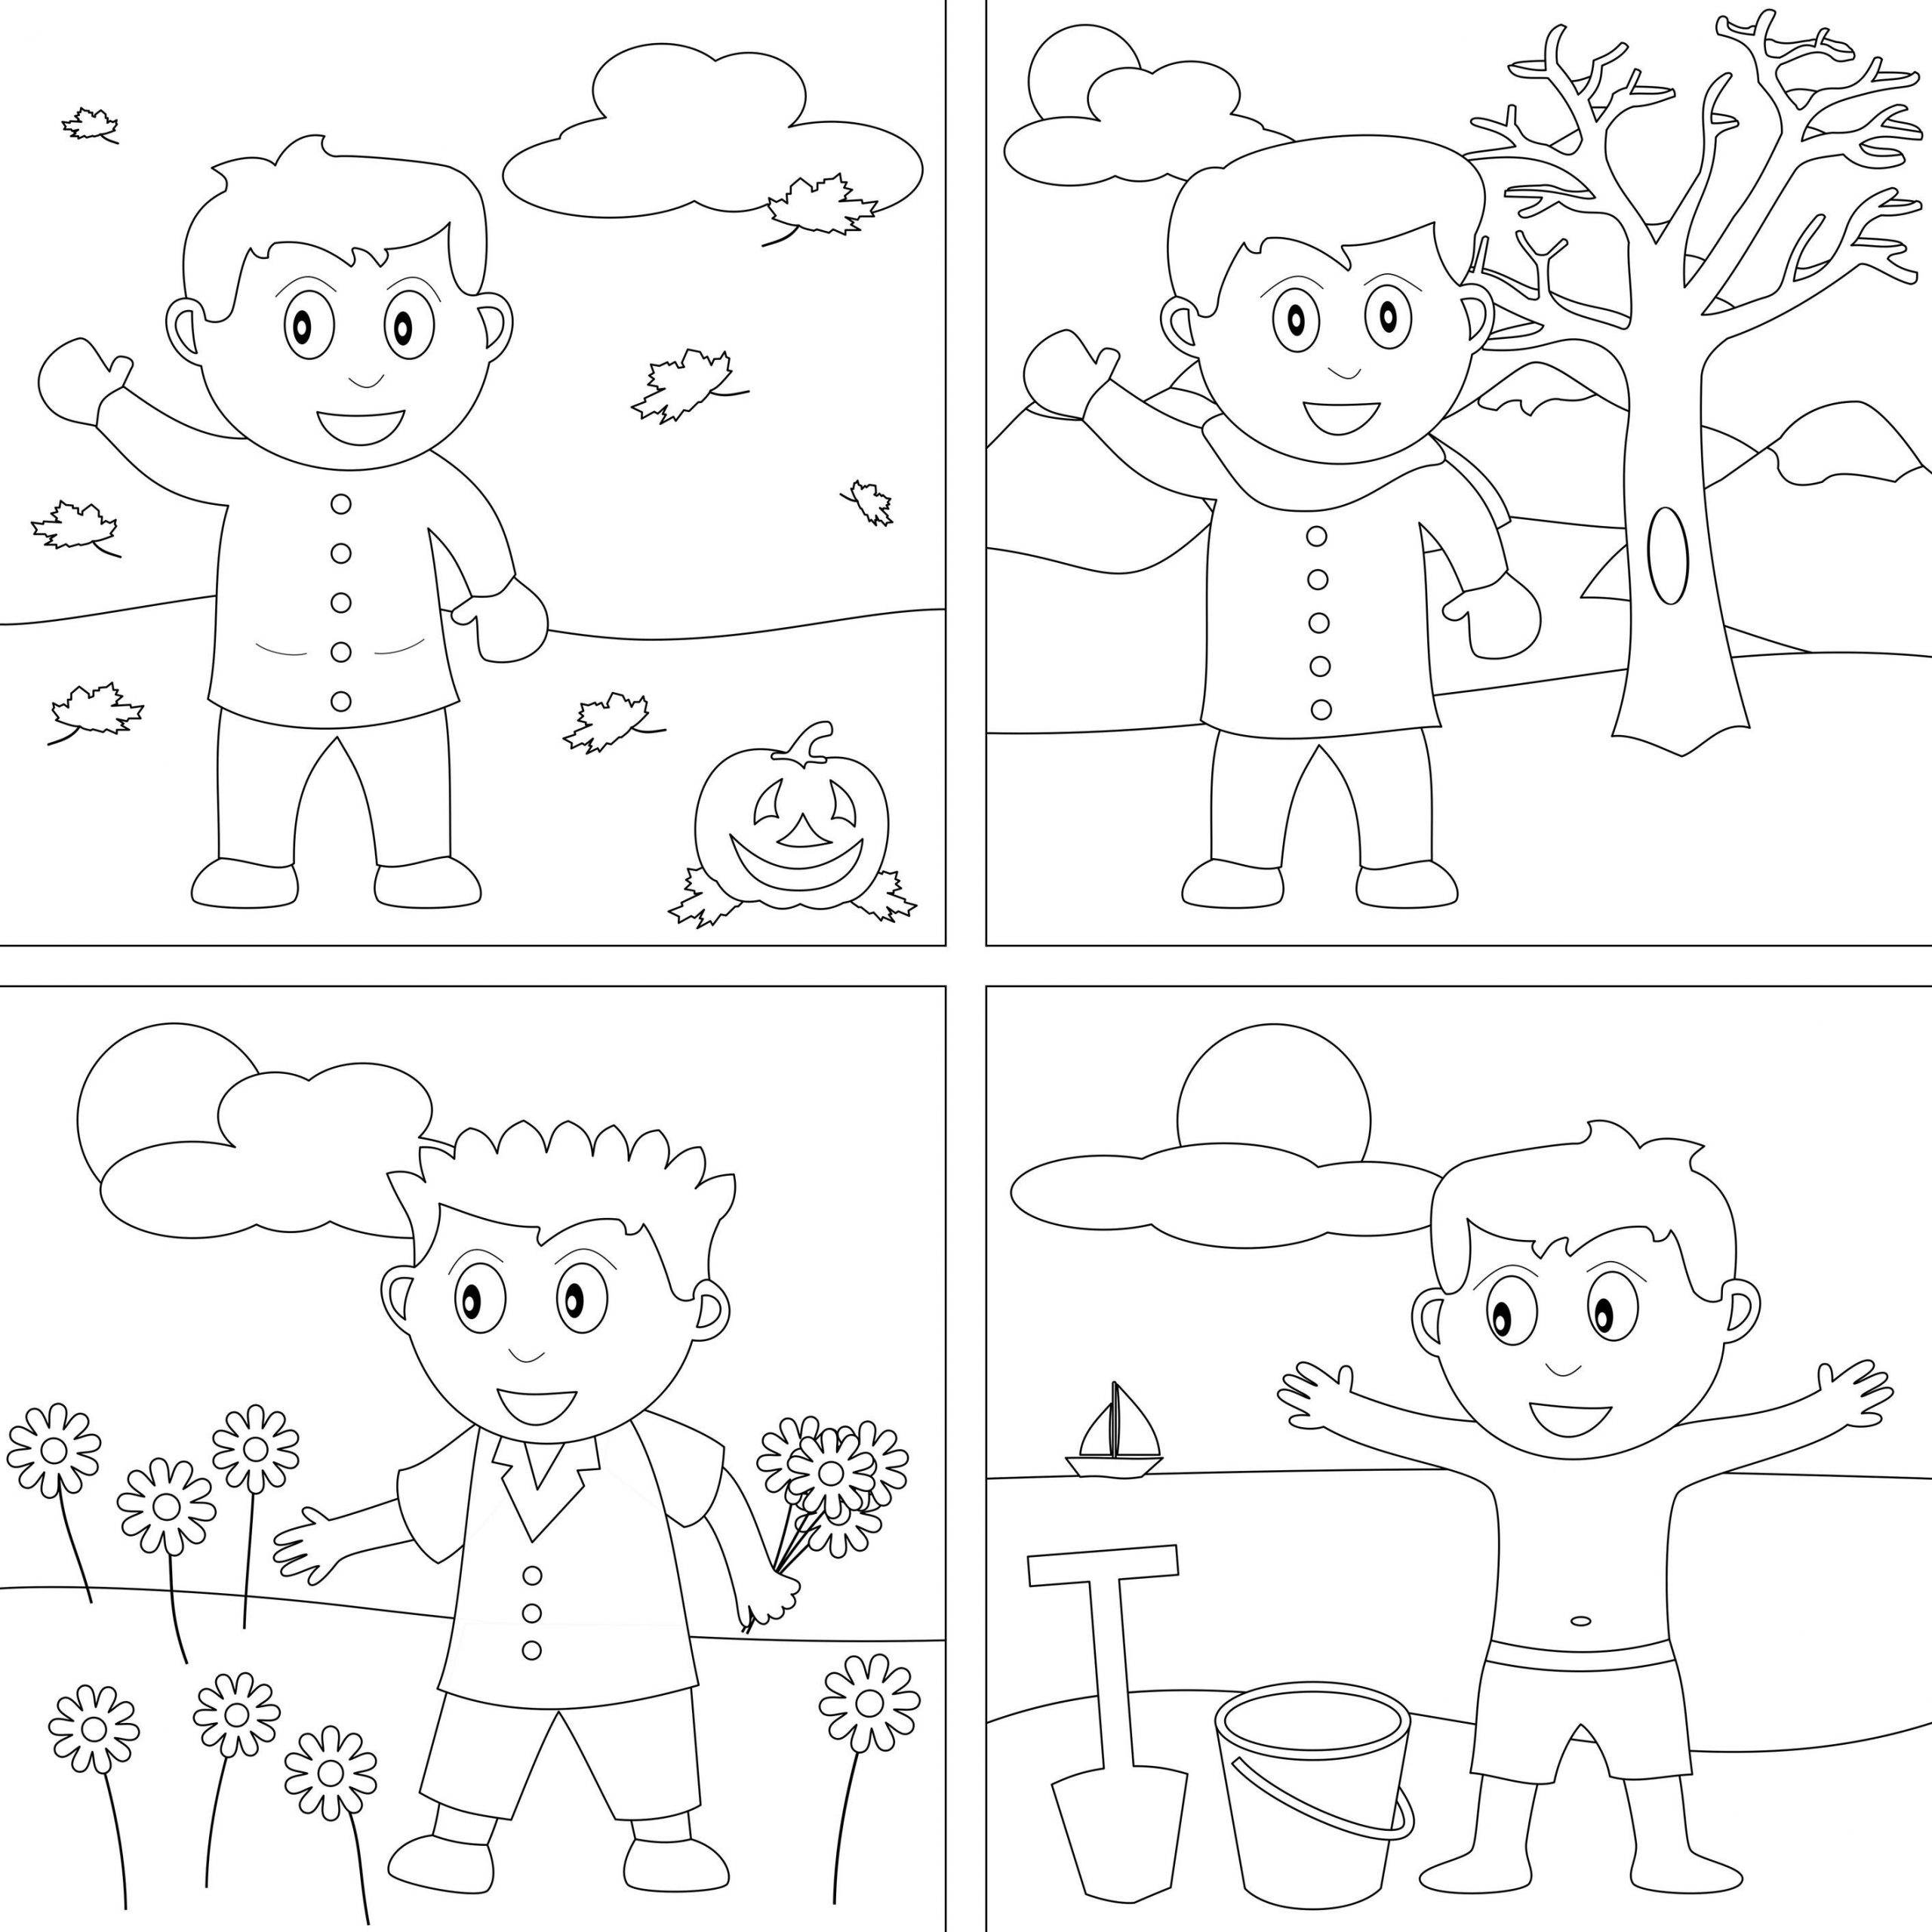 Seasons Worksheets for Preschoolers 4 Seasons Coloring Pages